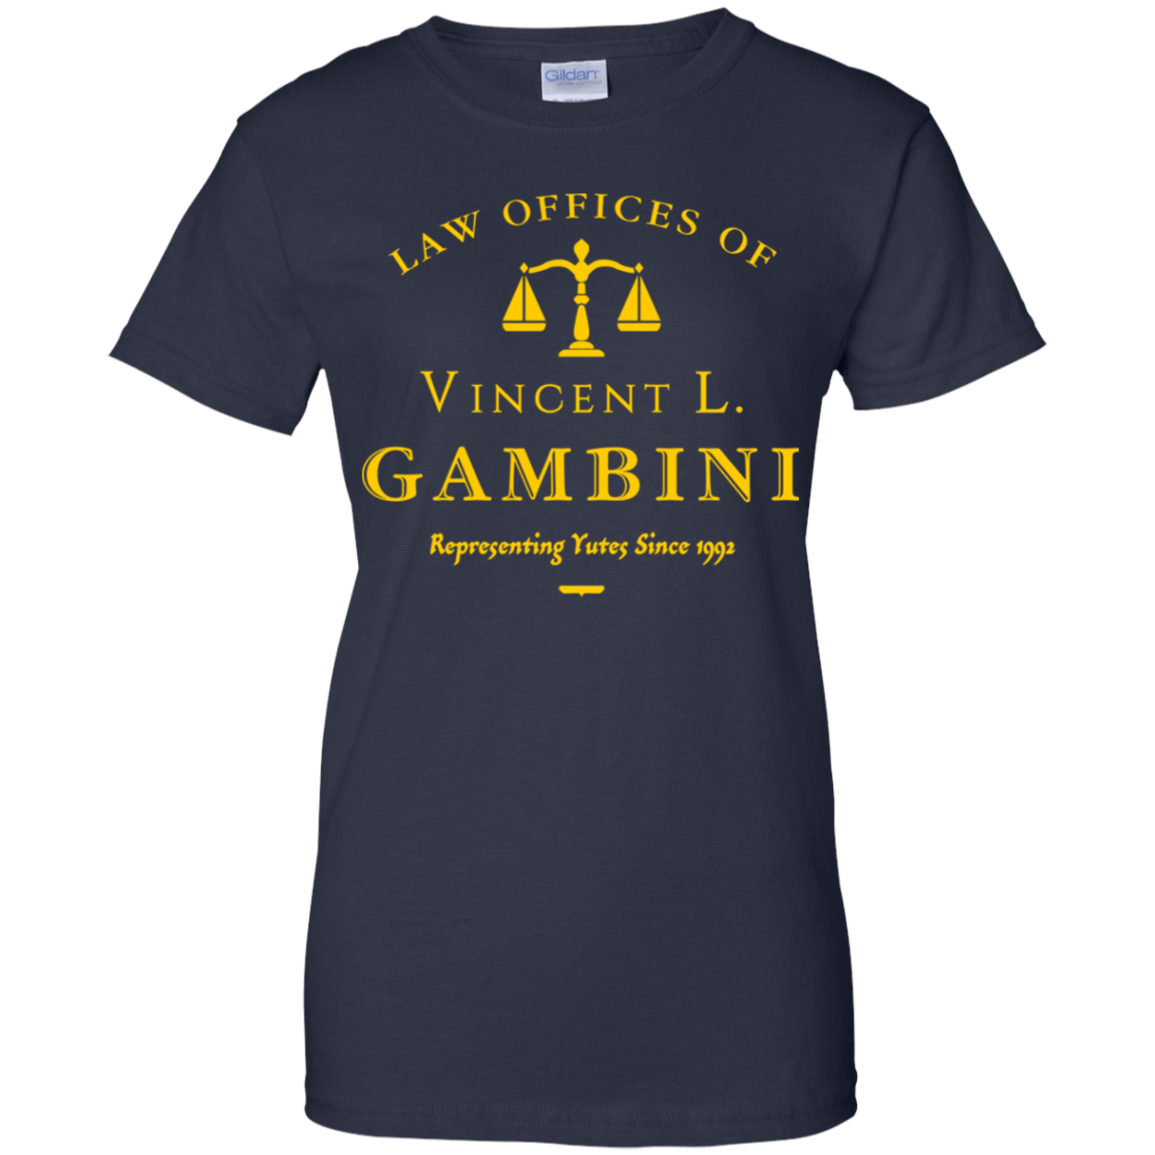 Law Offices Of Vincent L. Gambini T-Shirts, Hoodies 939-9259-77529020-44765 - Tee Ript